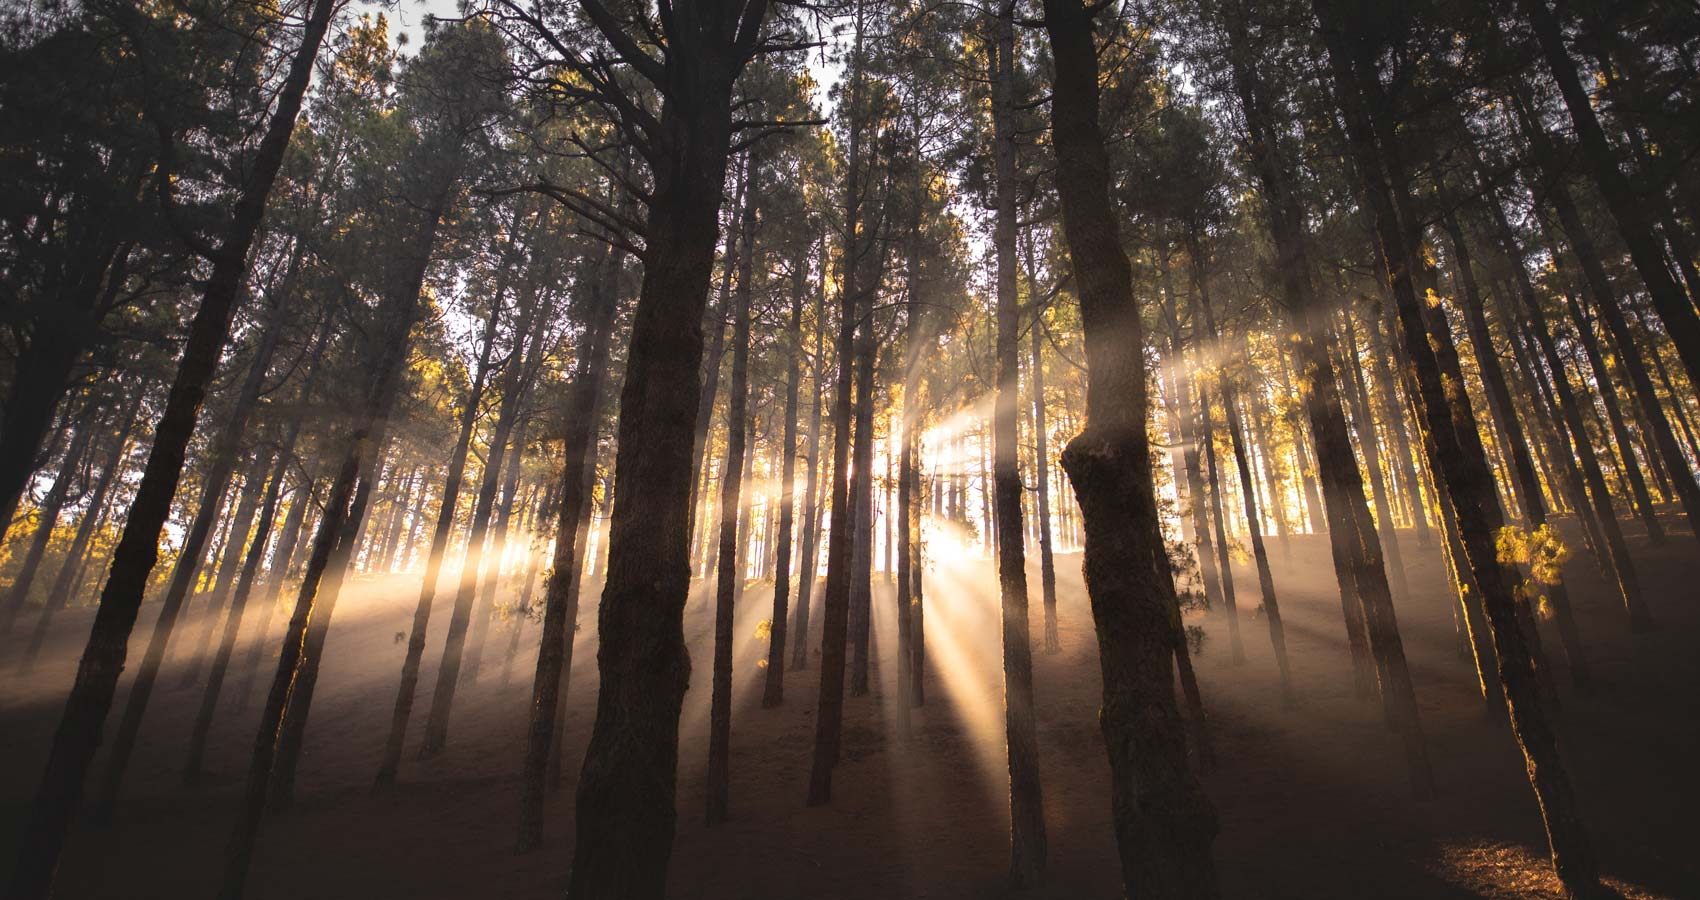 The Day Woods/The Still Night, poem by Julian Mann at Spillwords.com